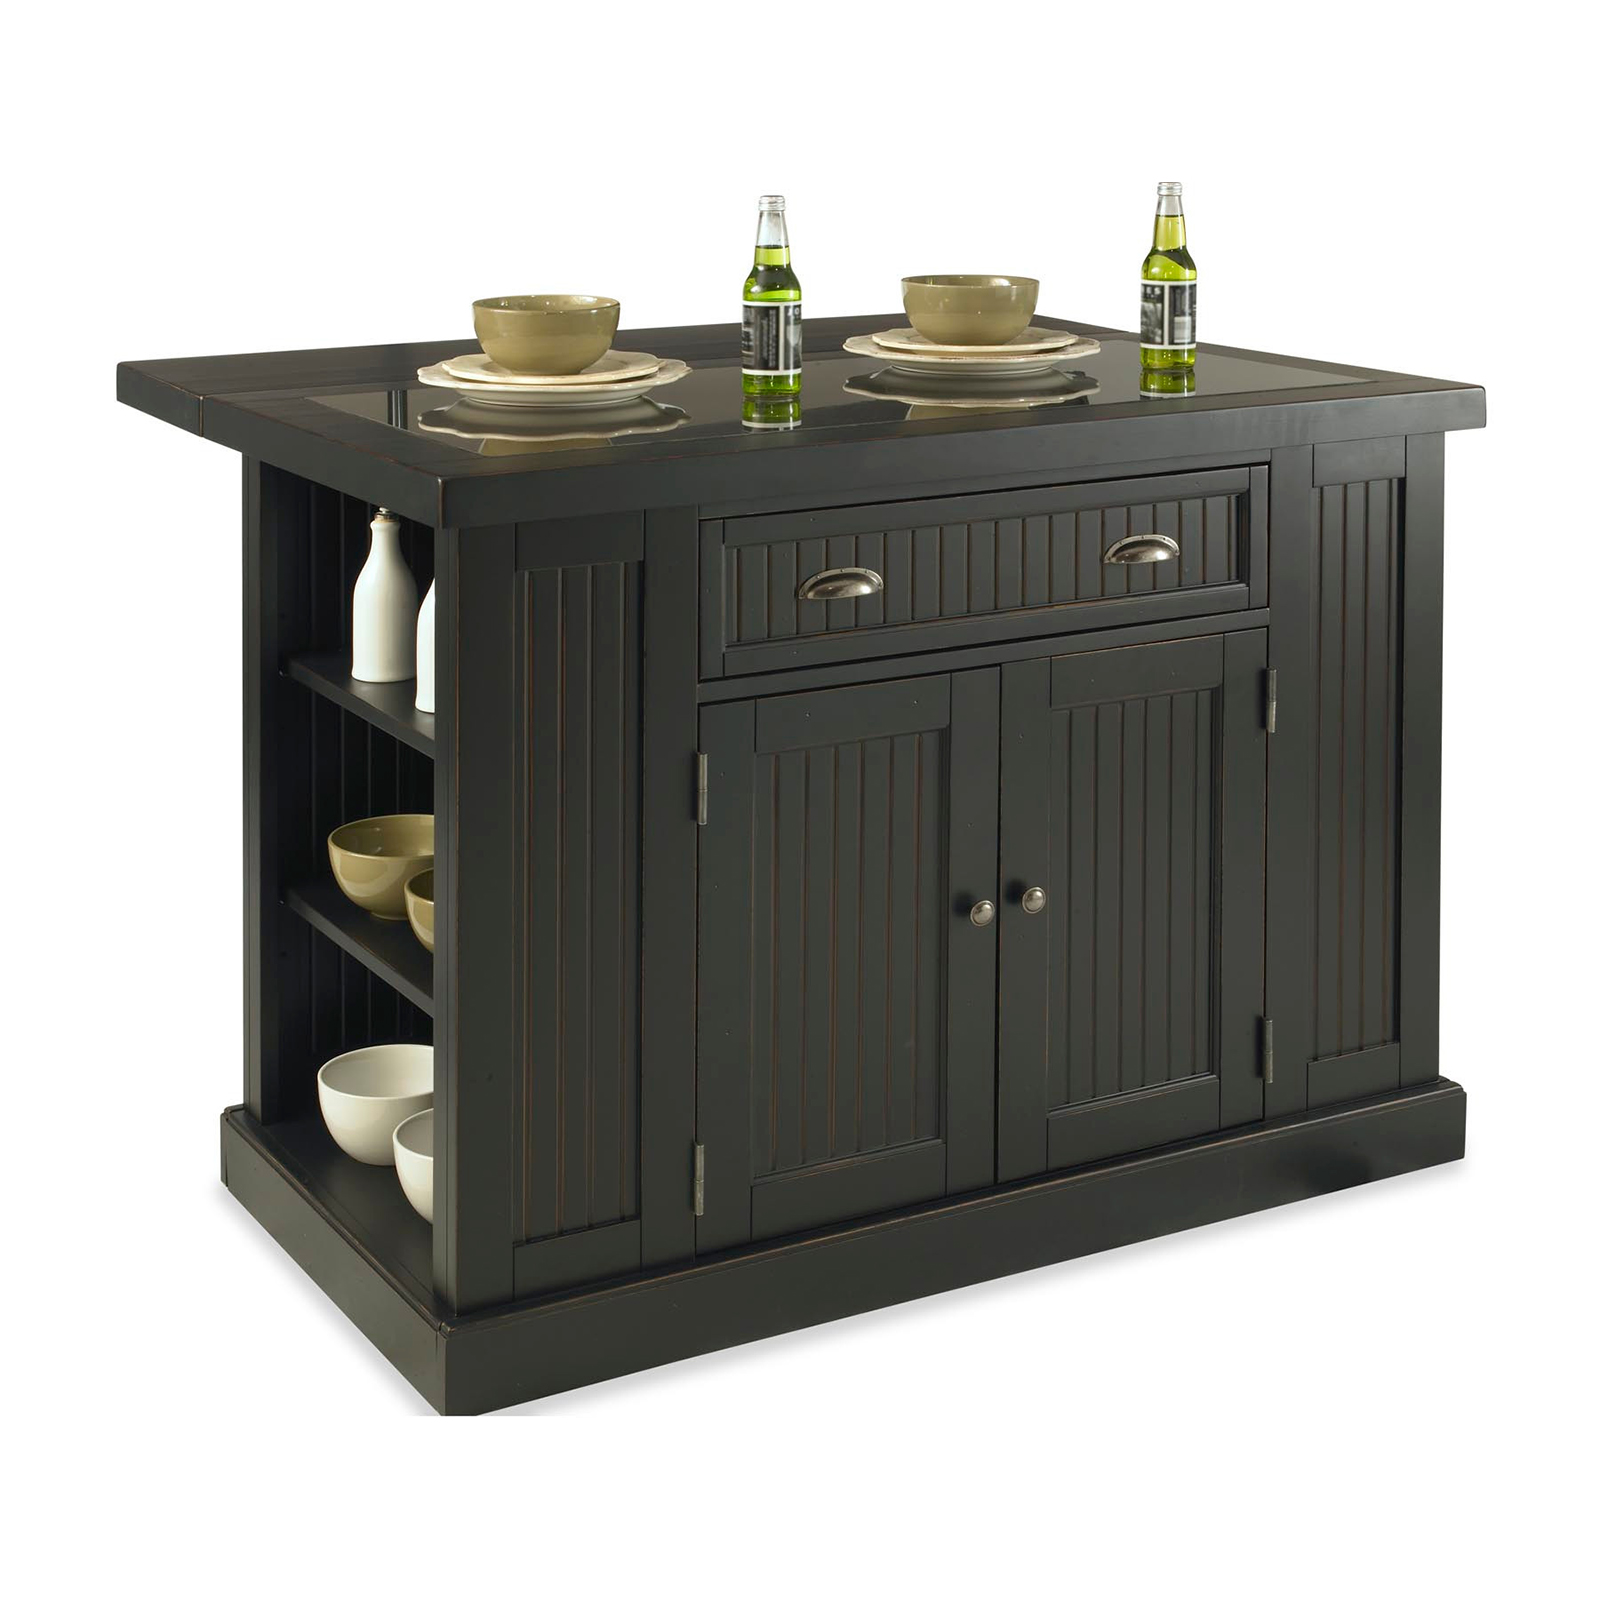 Home Styles Nantucket Kitchen Island With Two Stools Distressed Black Kitchen Islands And